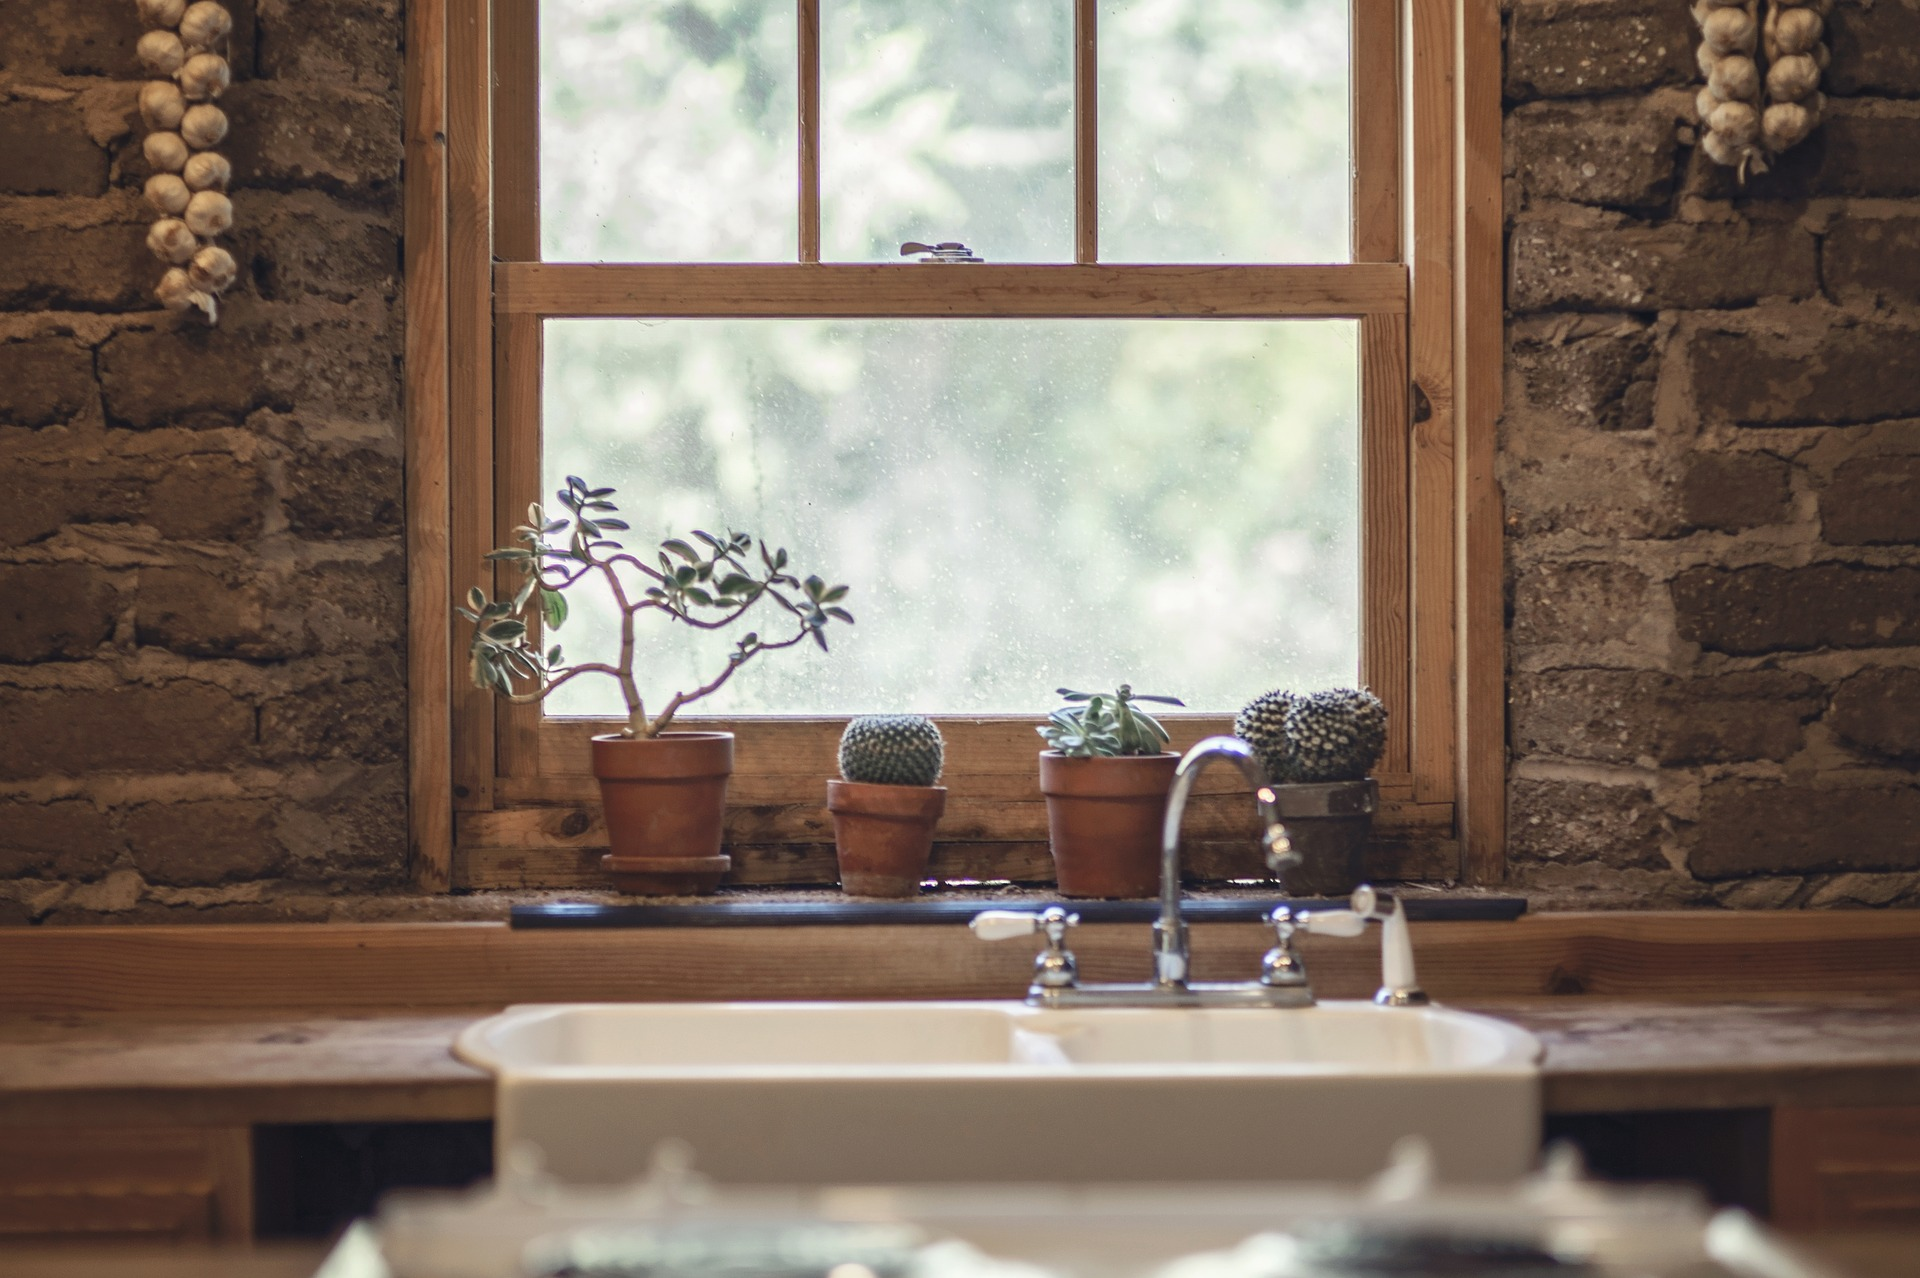 Kitchen sink in front of a window with succulents on the windowpane